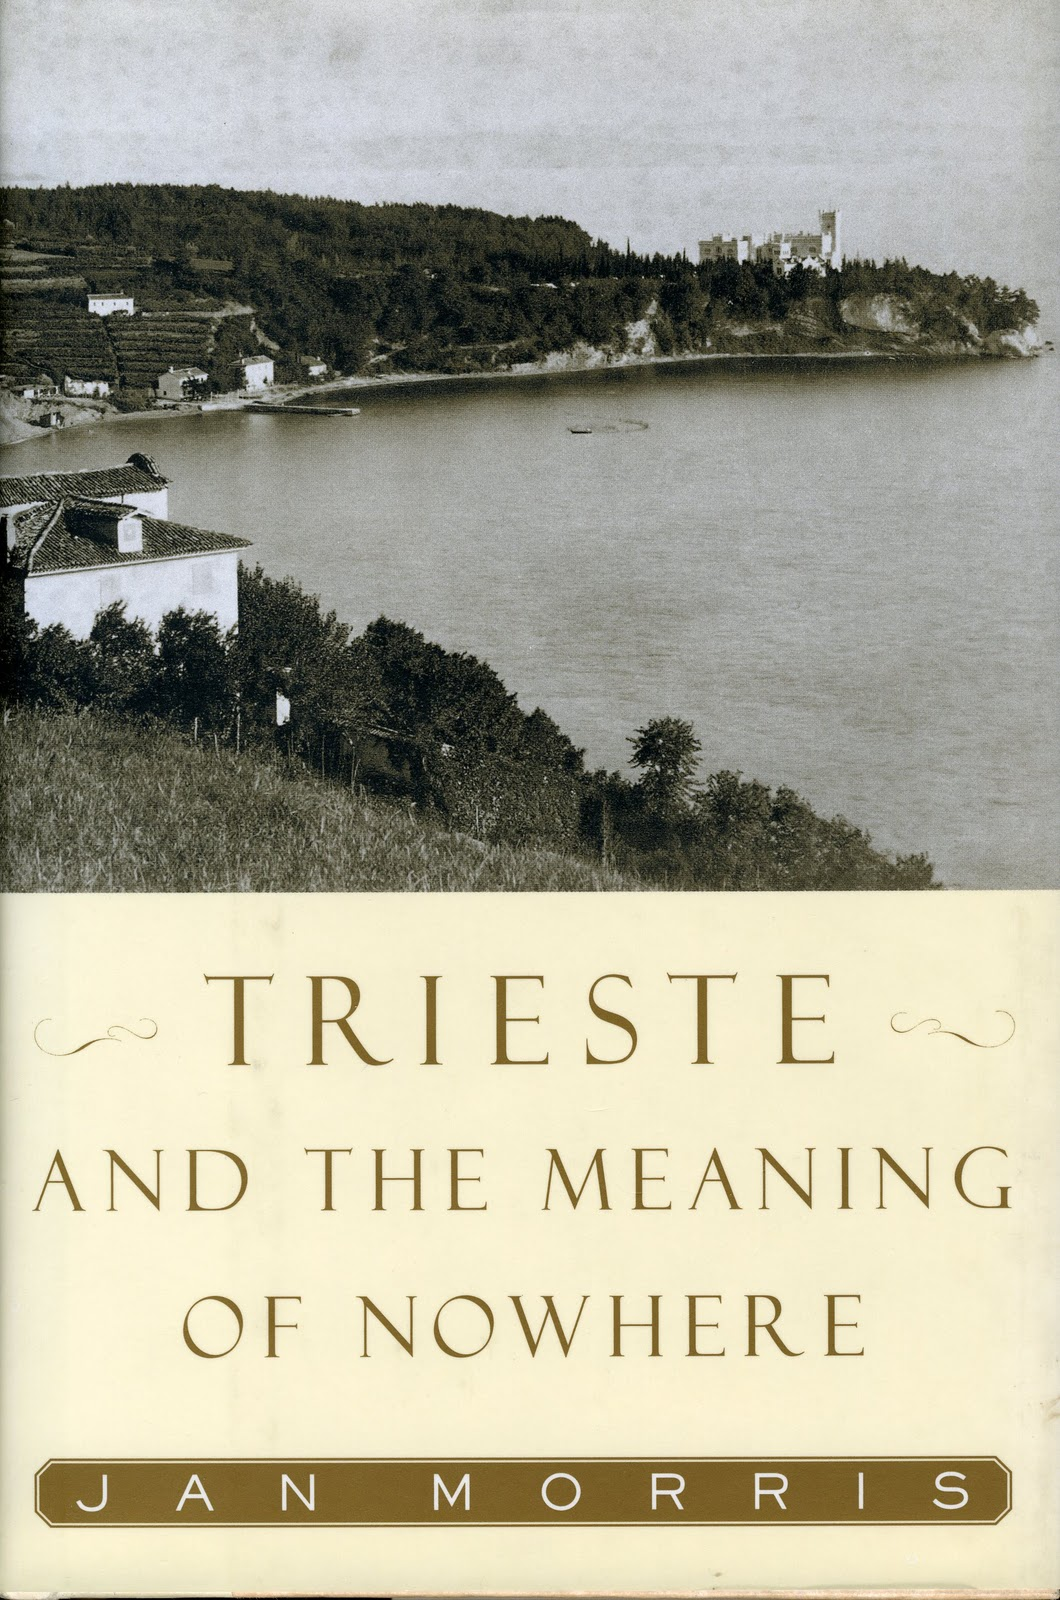 In her last book, Trieste and the Meaning of Nowhere, she writes: